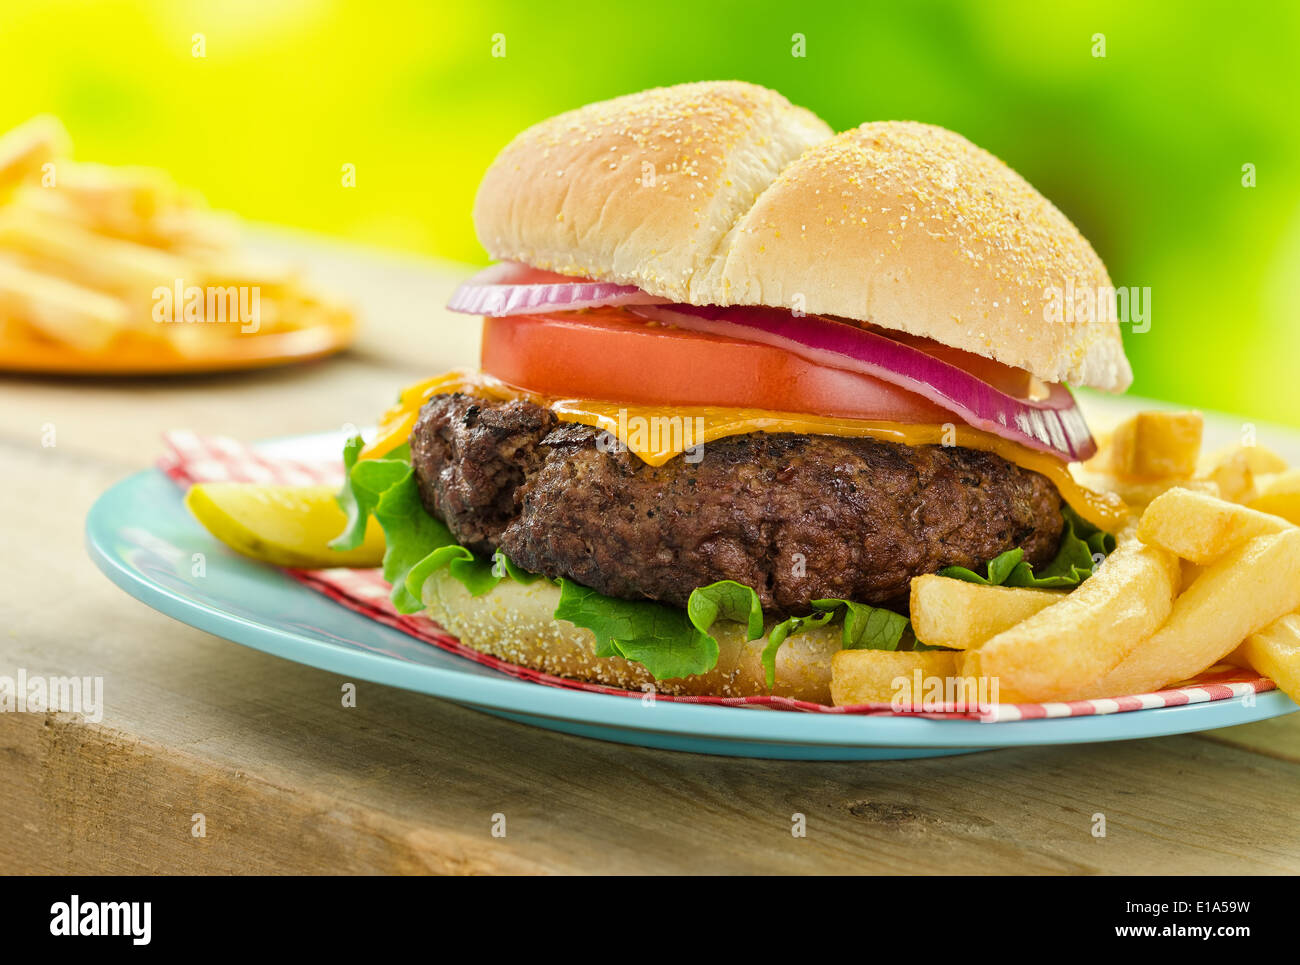 A delicious grilled cheeseburger and fries in an outdoor picnic barbecue setting. - Stock Image